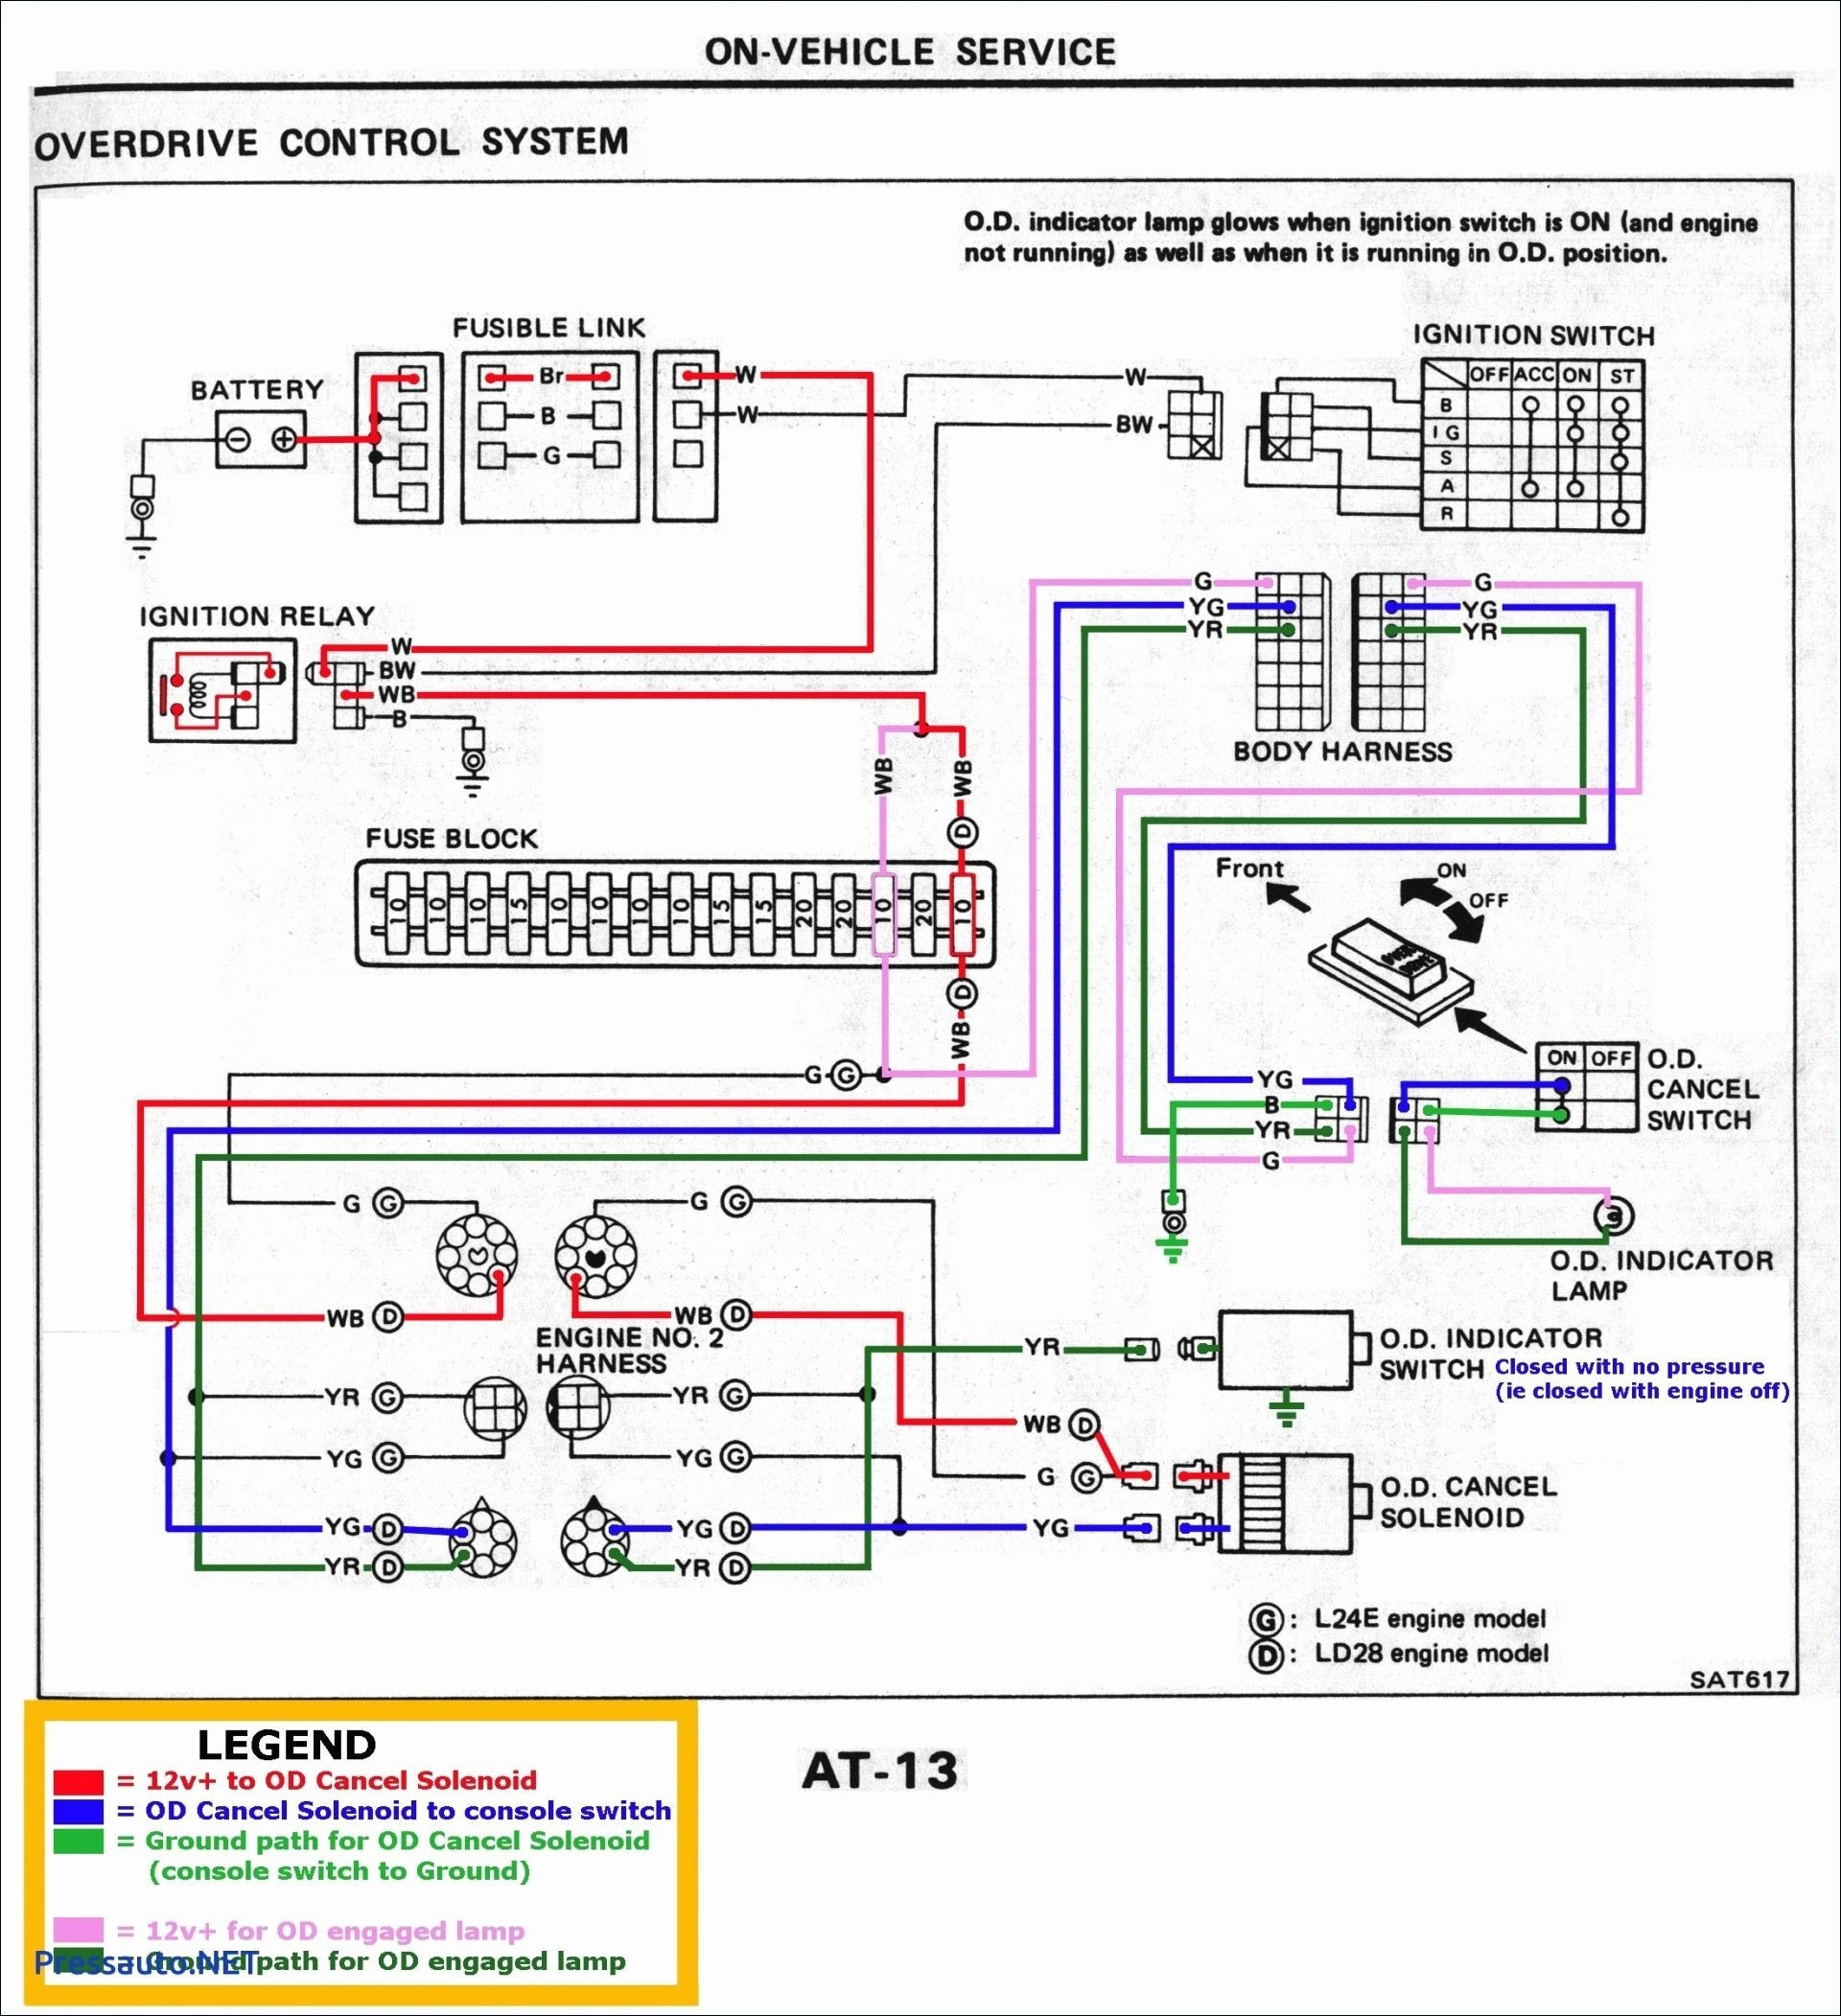 1999 Jetta Engine Diagram 84 Camaro Fuse Box Another Blog About Wiring Diagram • Of 1999 Jetta Engine Diagram